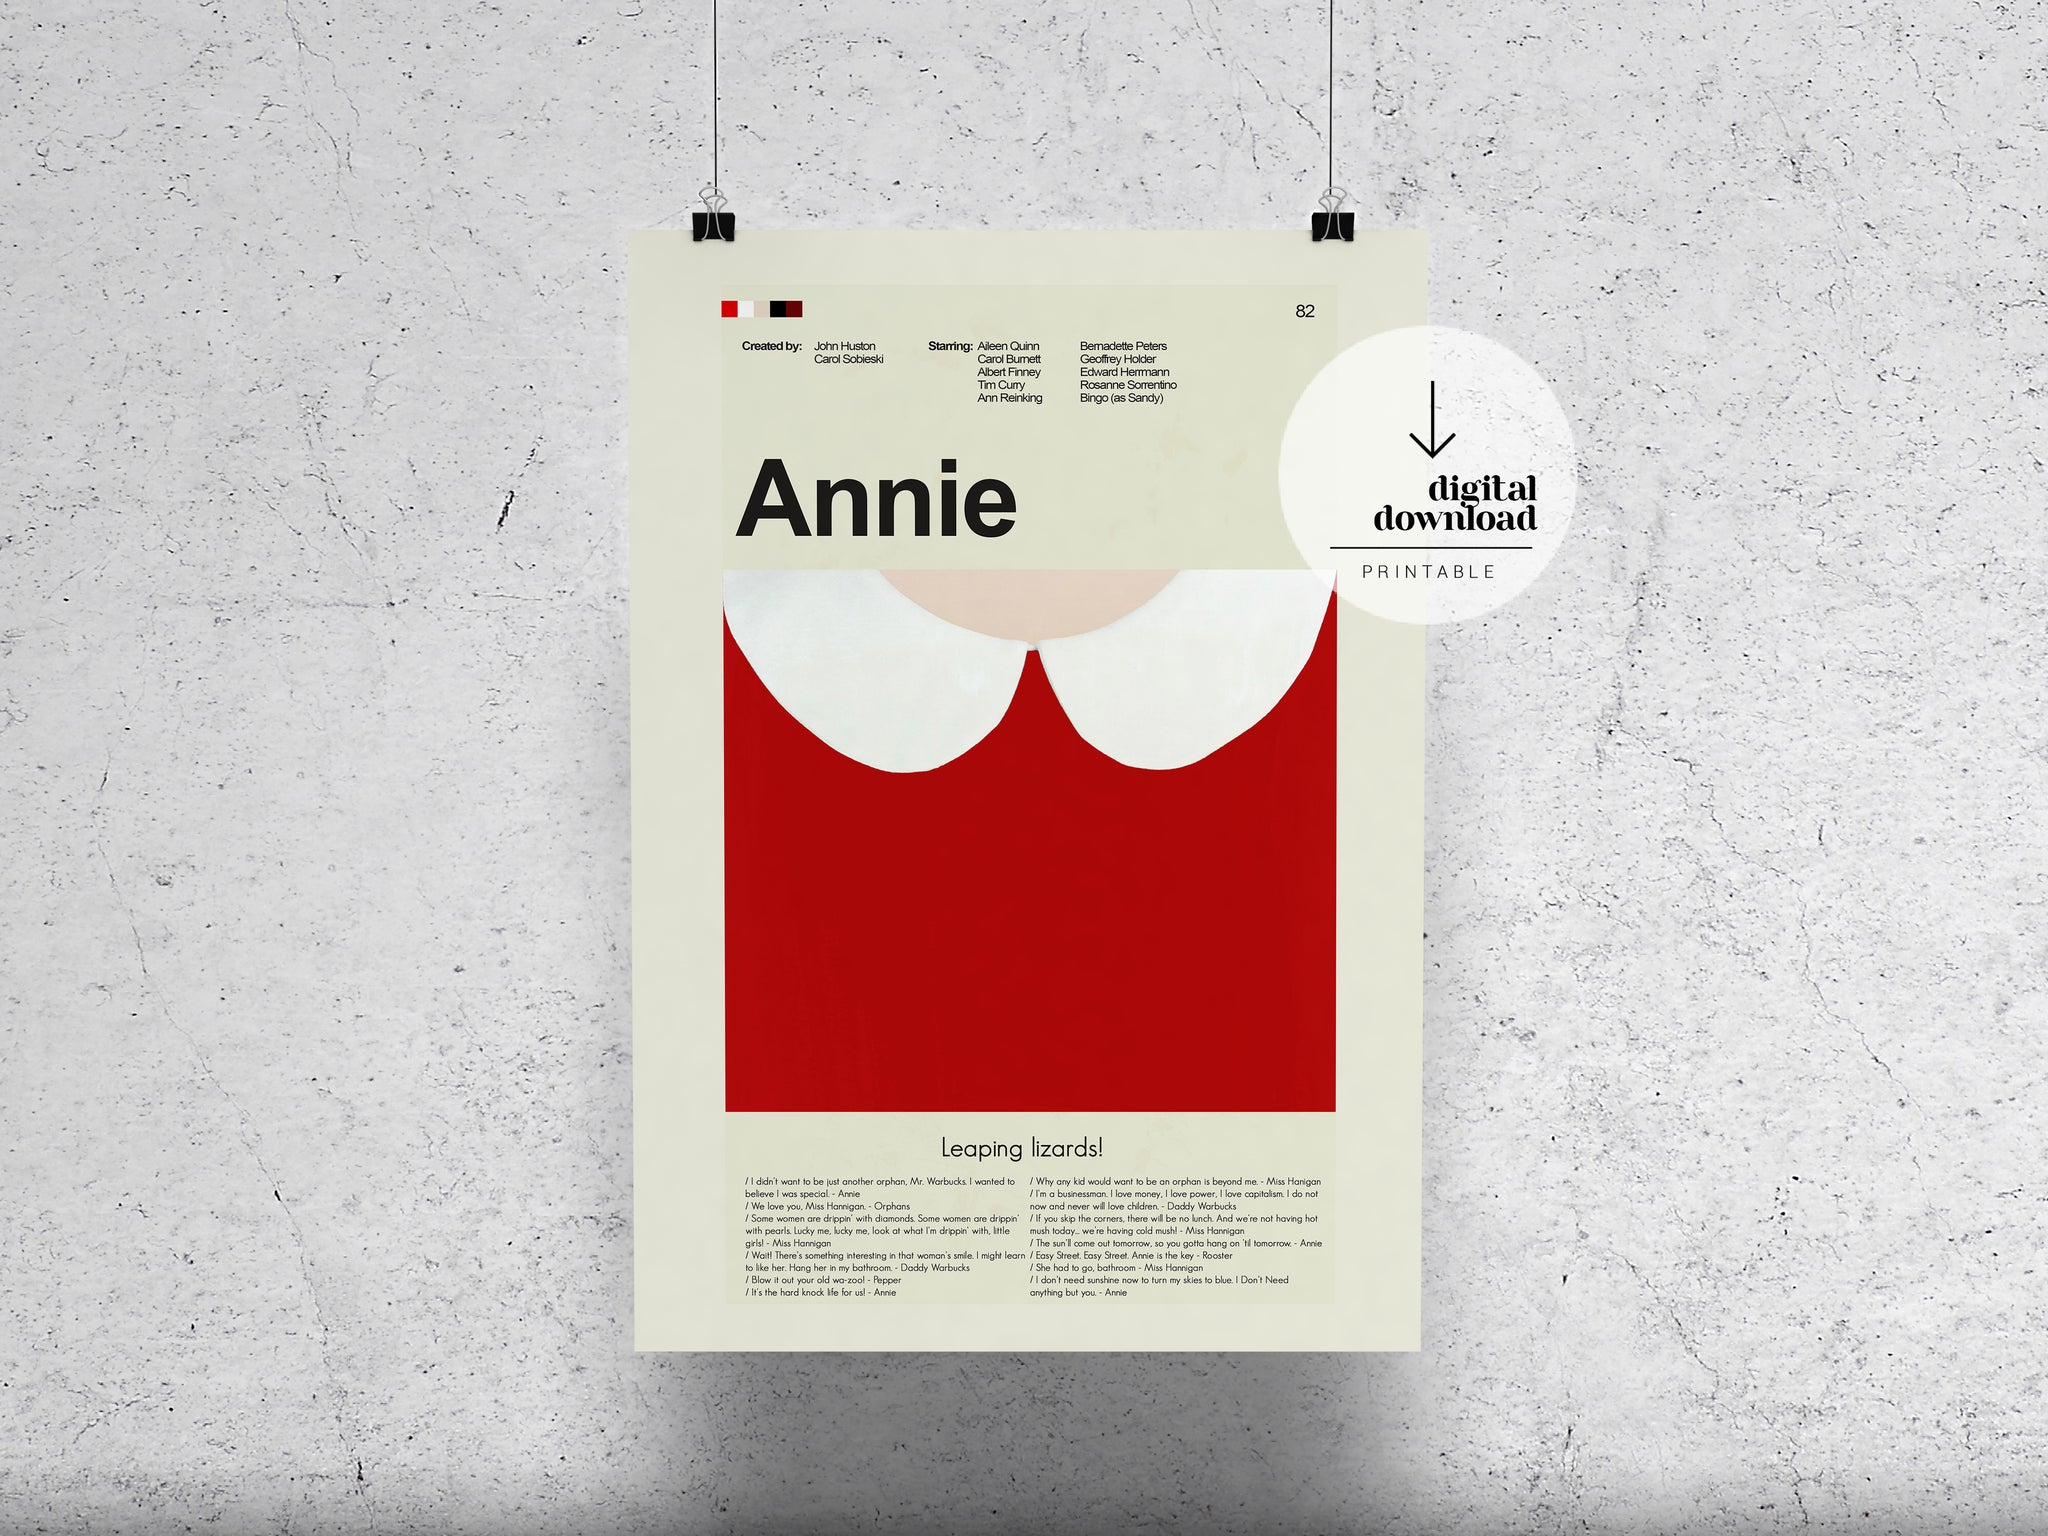 Annie | DIGITAL DOWNLOAD